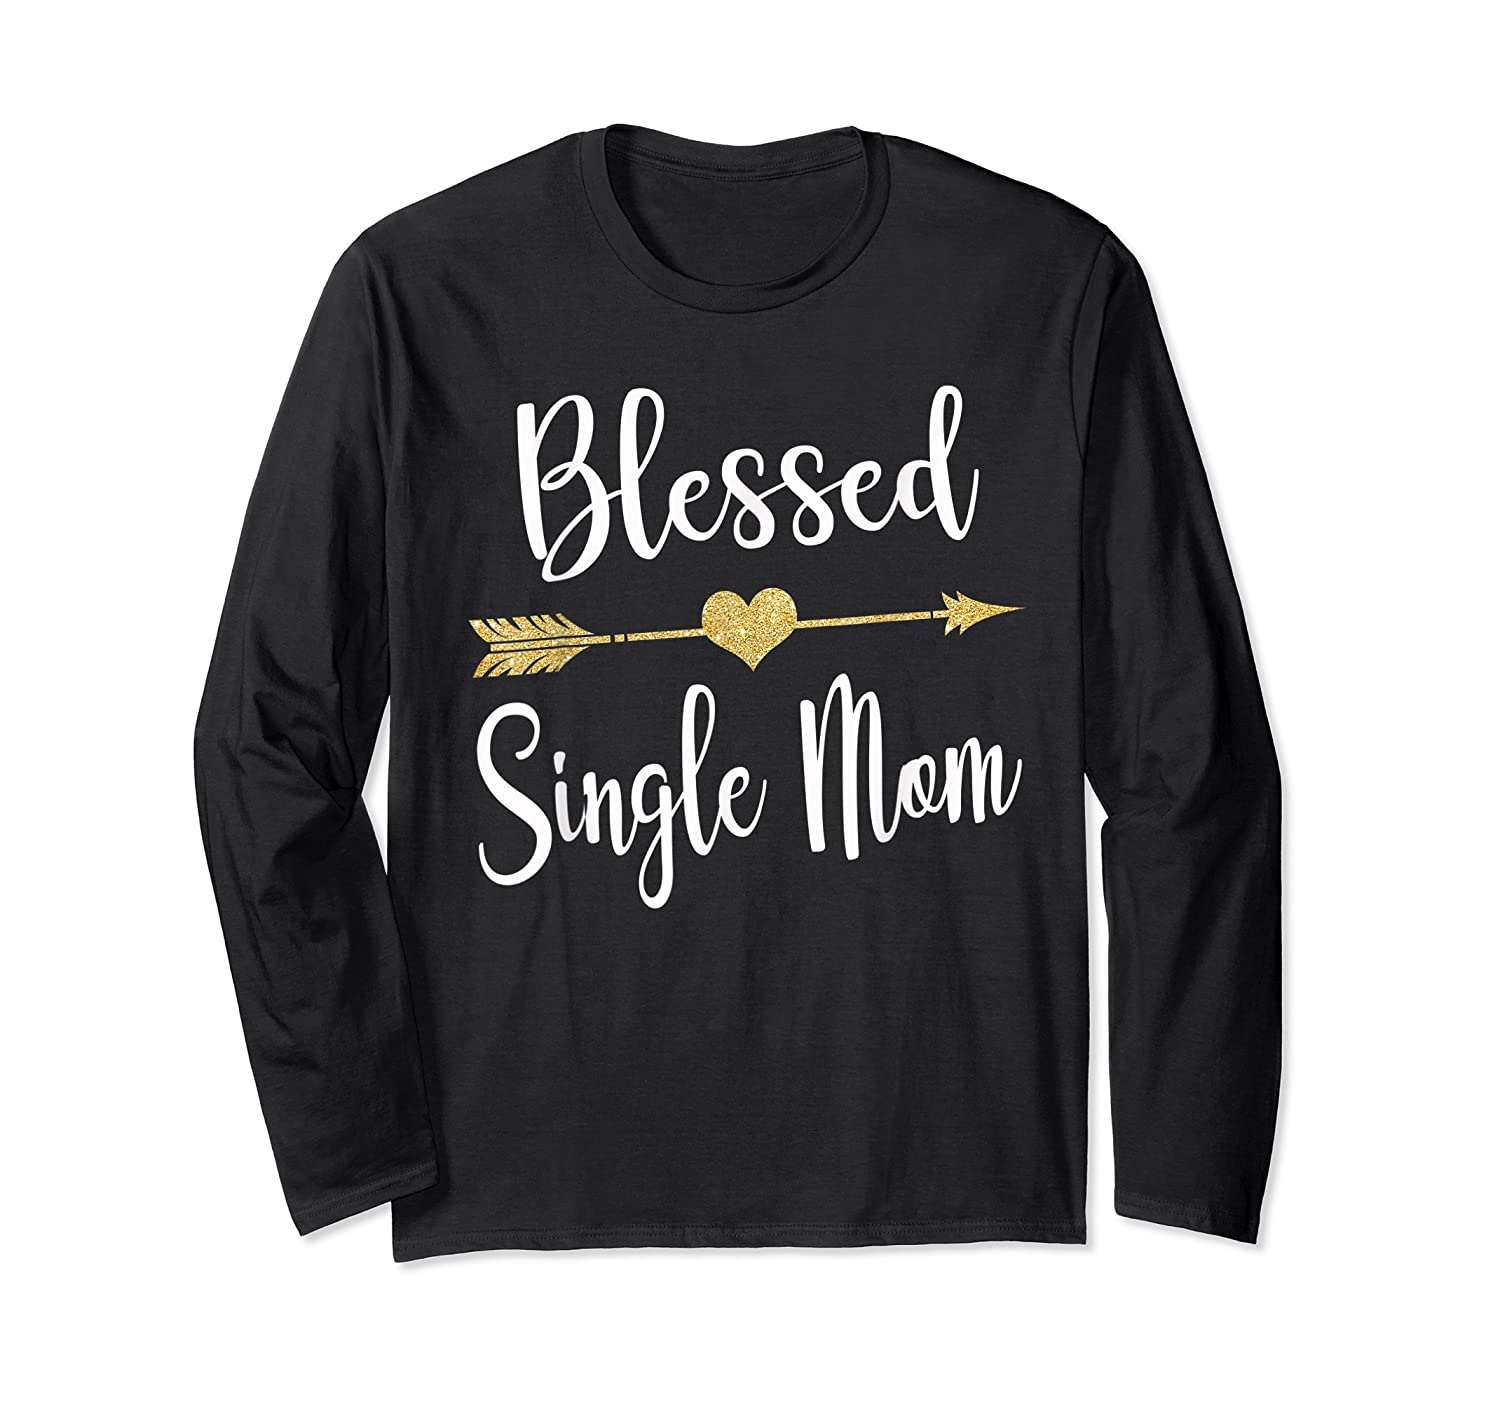 Funny Arrow Blessed Single Mom T Shirt Gift For Thanksgiving Long Sleeve T-shirt